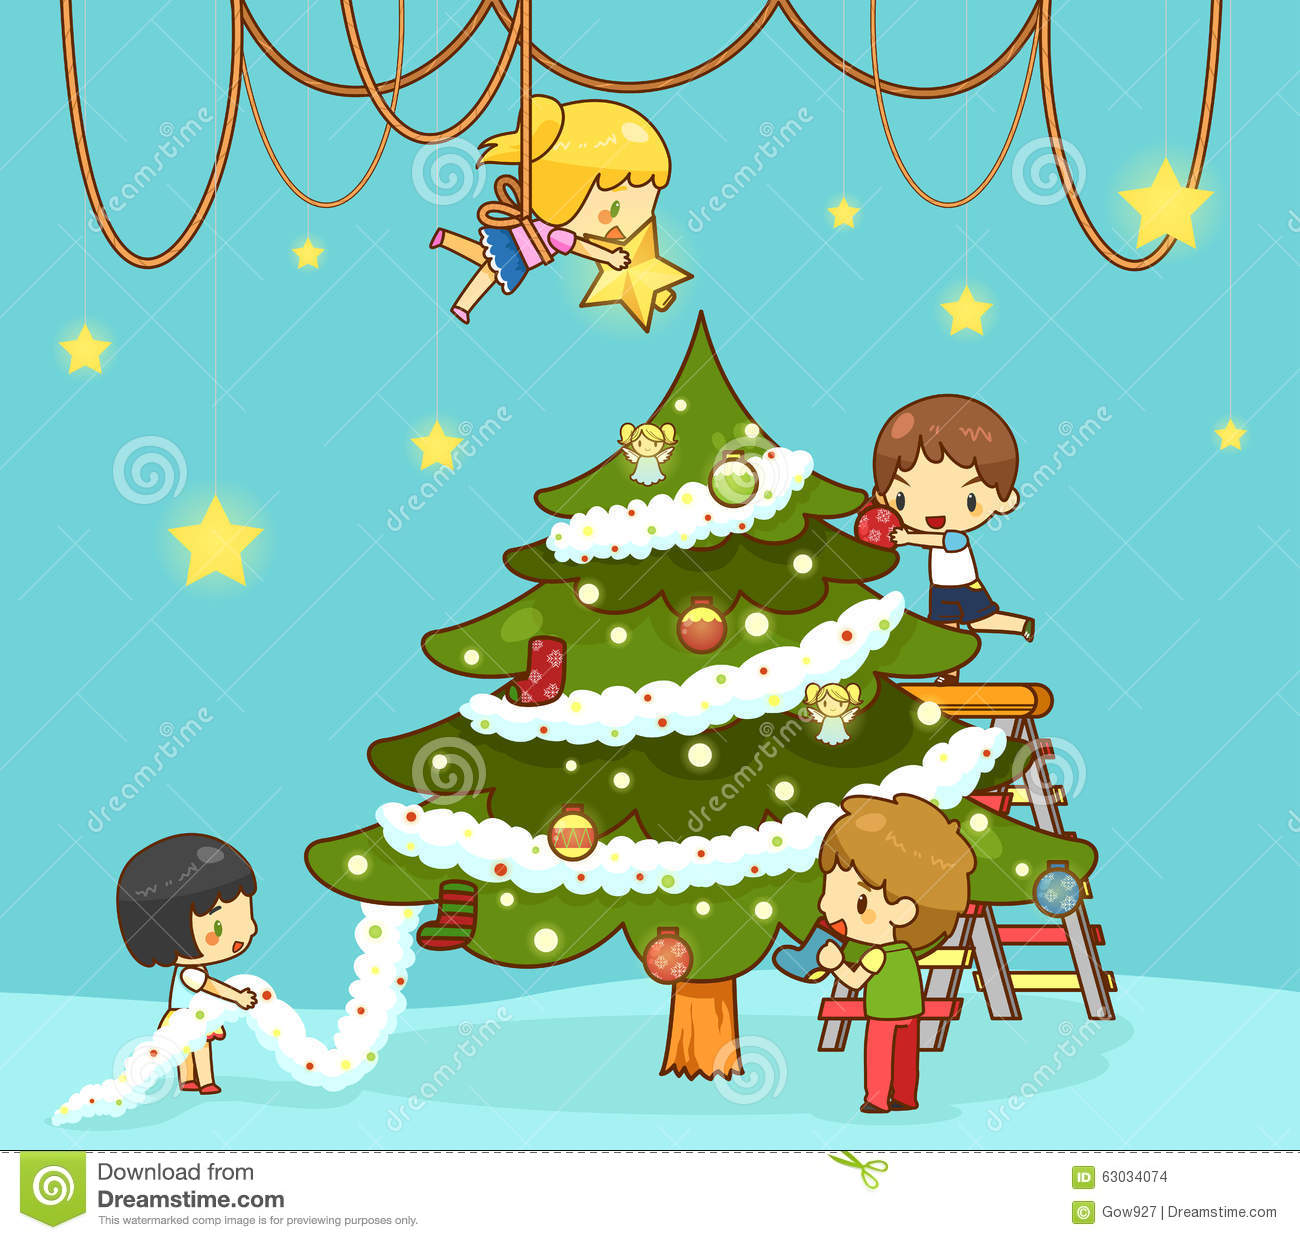 Kids Decorating Christmas Tree: Kids Children With Boy And Girl Friends Are Decorating